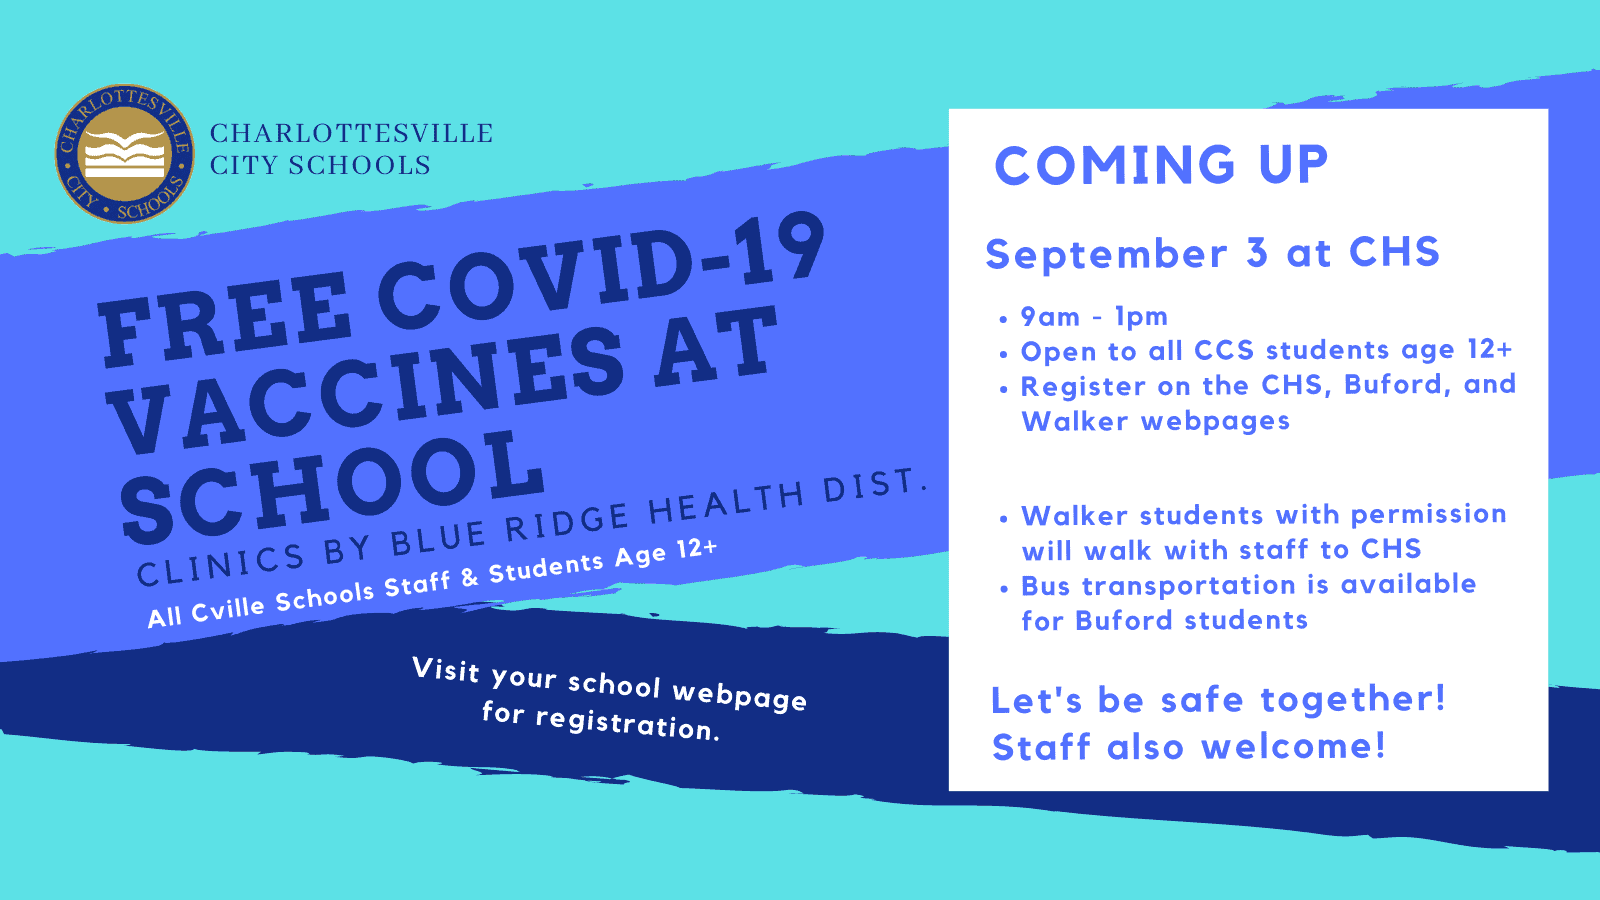 Information about 9/3 Vaccination Event at CHS. See webpage for information.